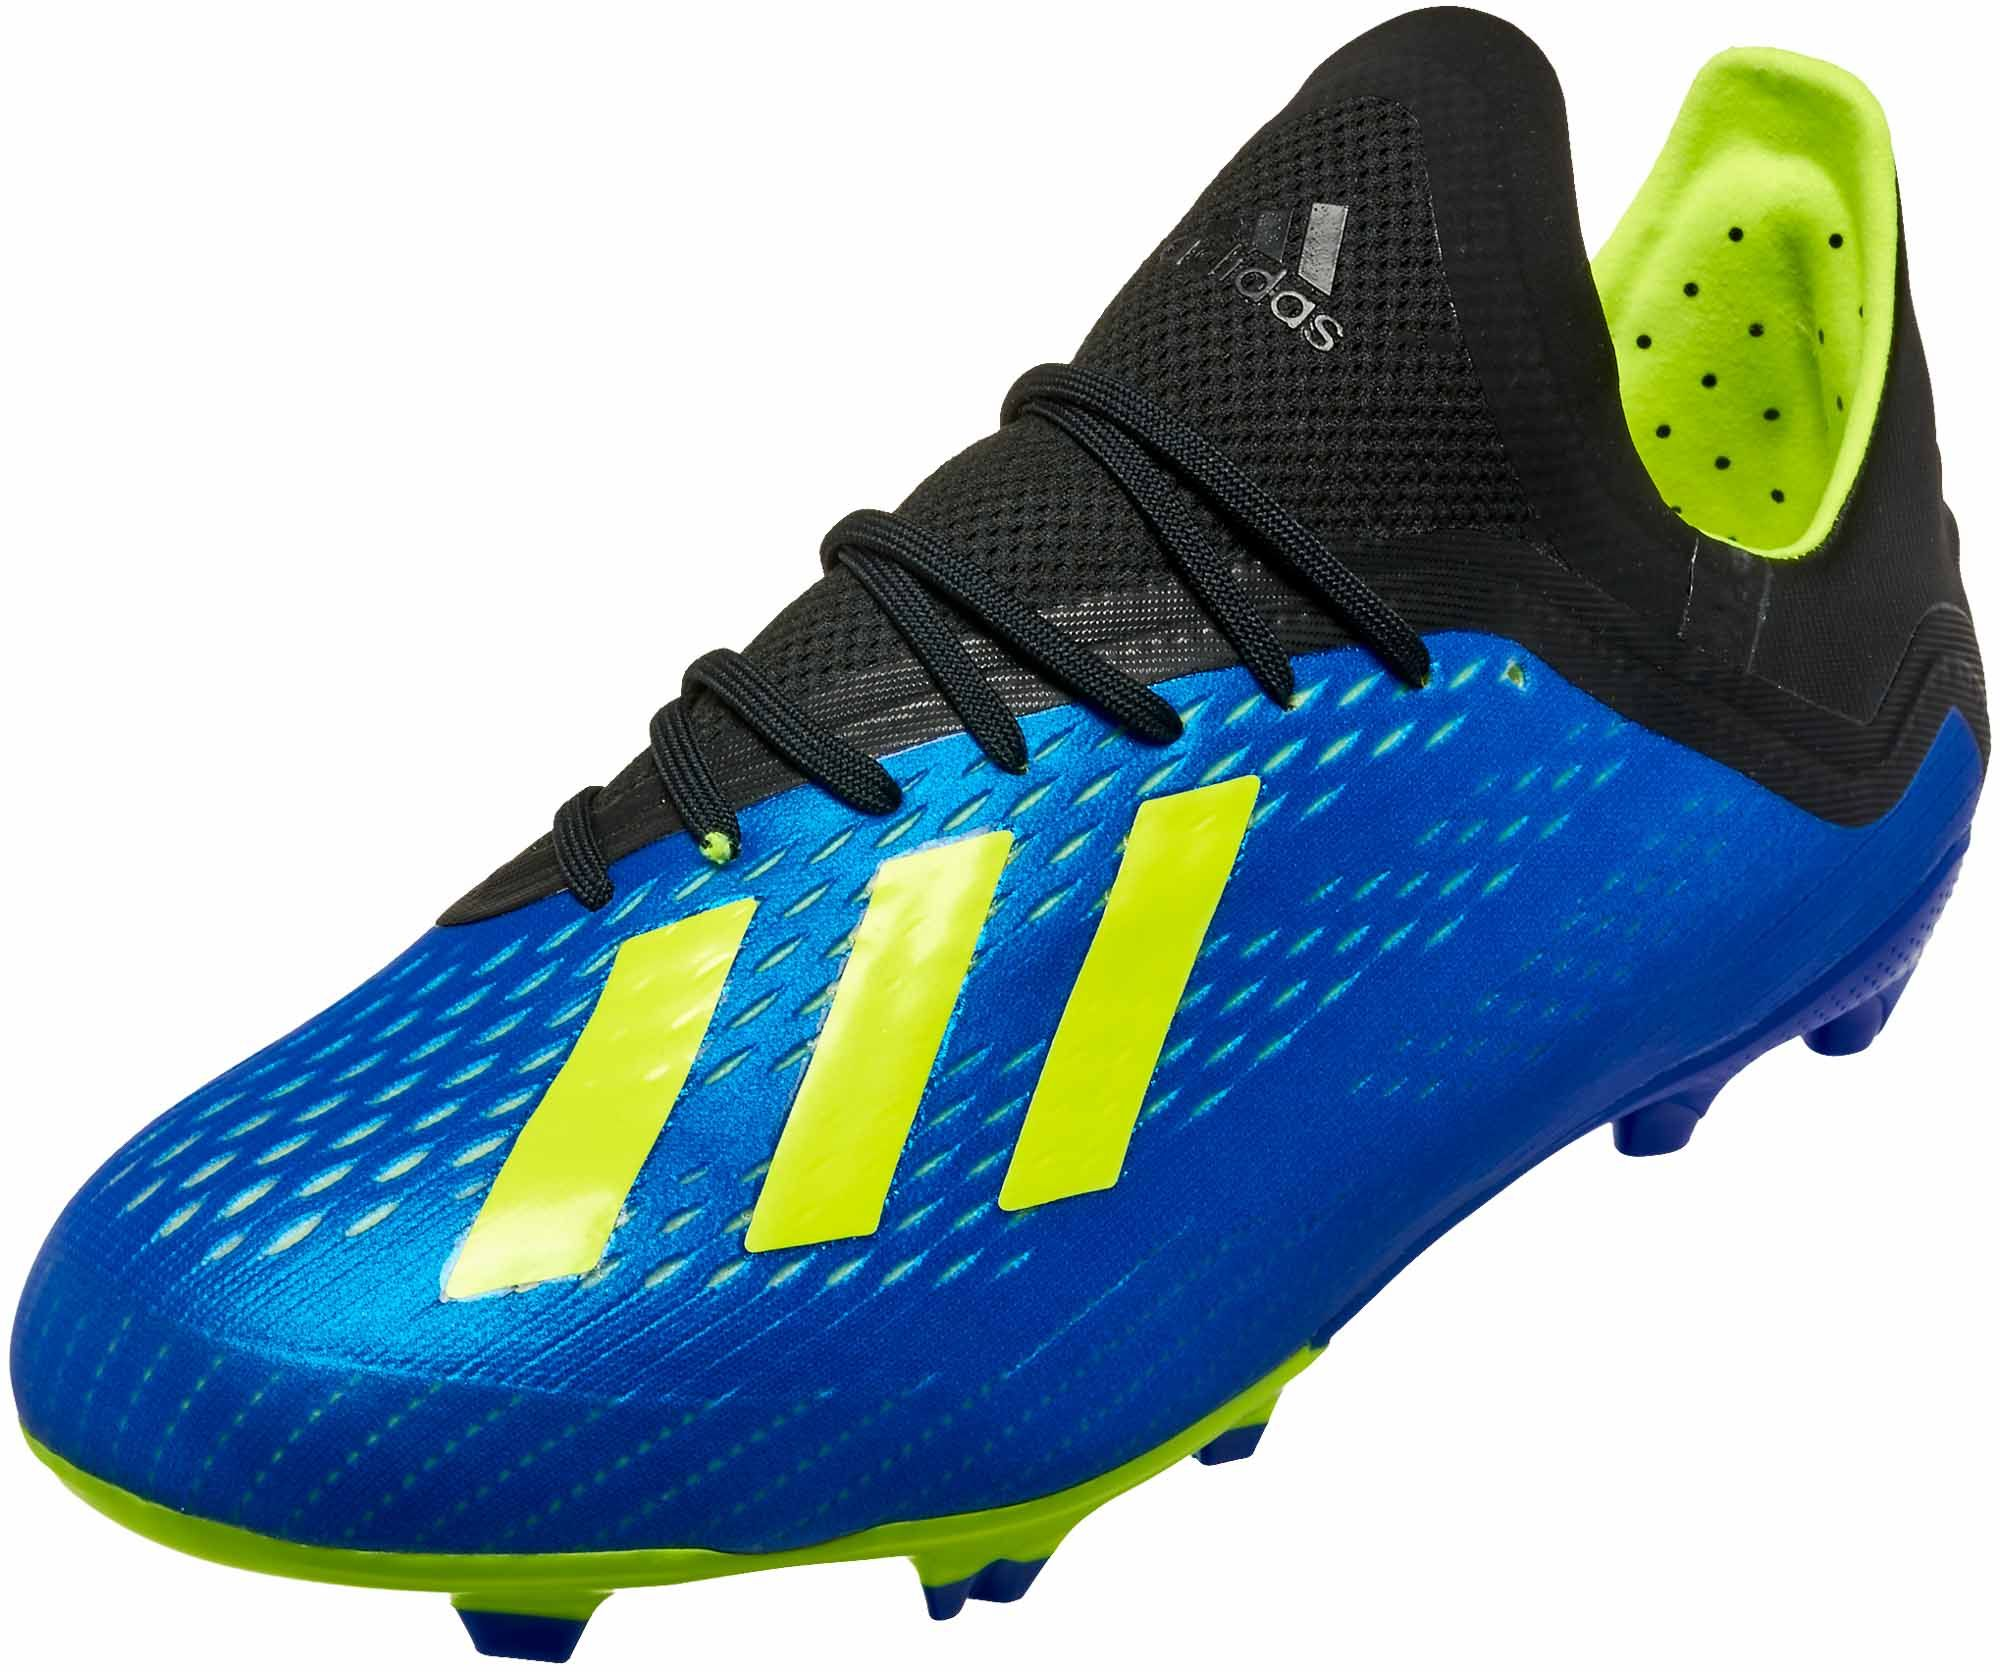 reputable site 4ef6b a1c10 Youth adidas X18.1. At SoccerPro.